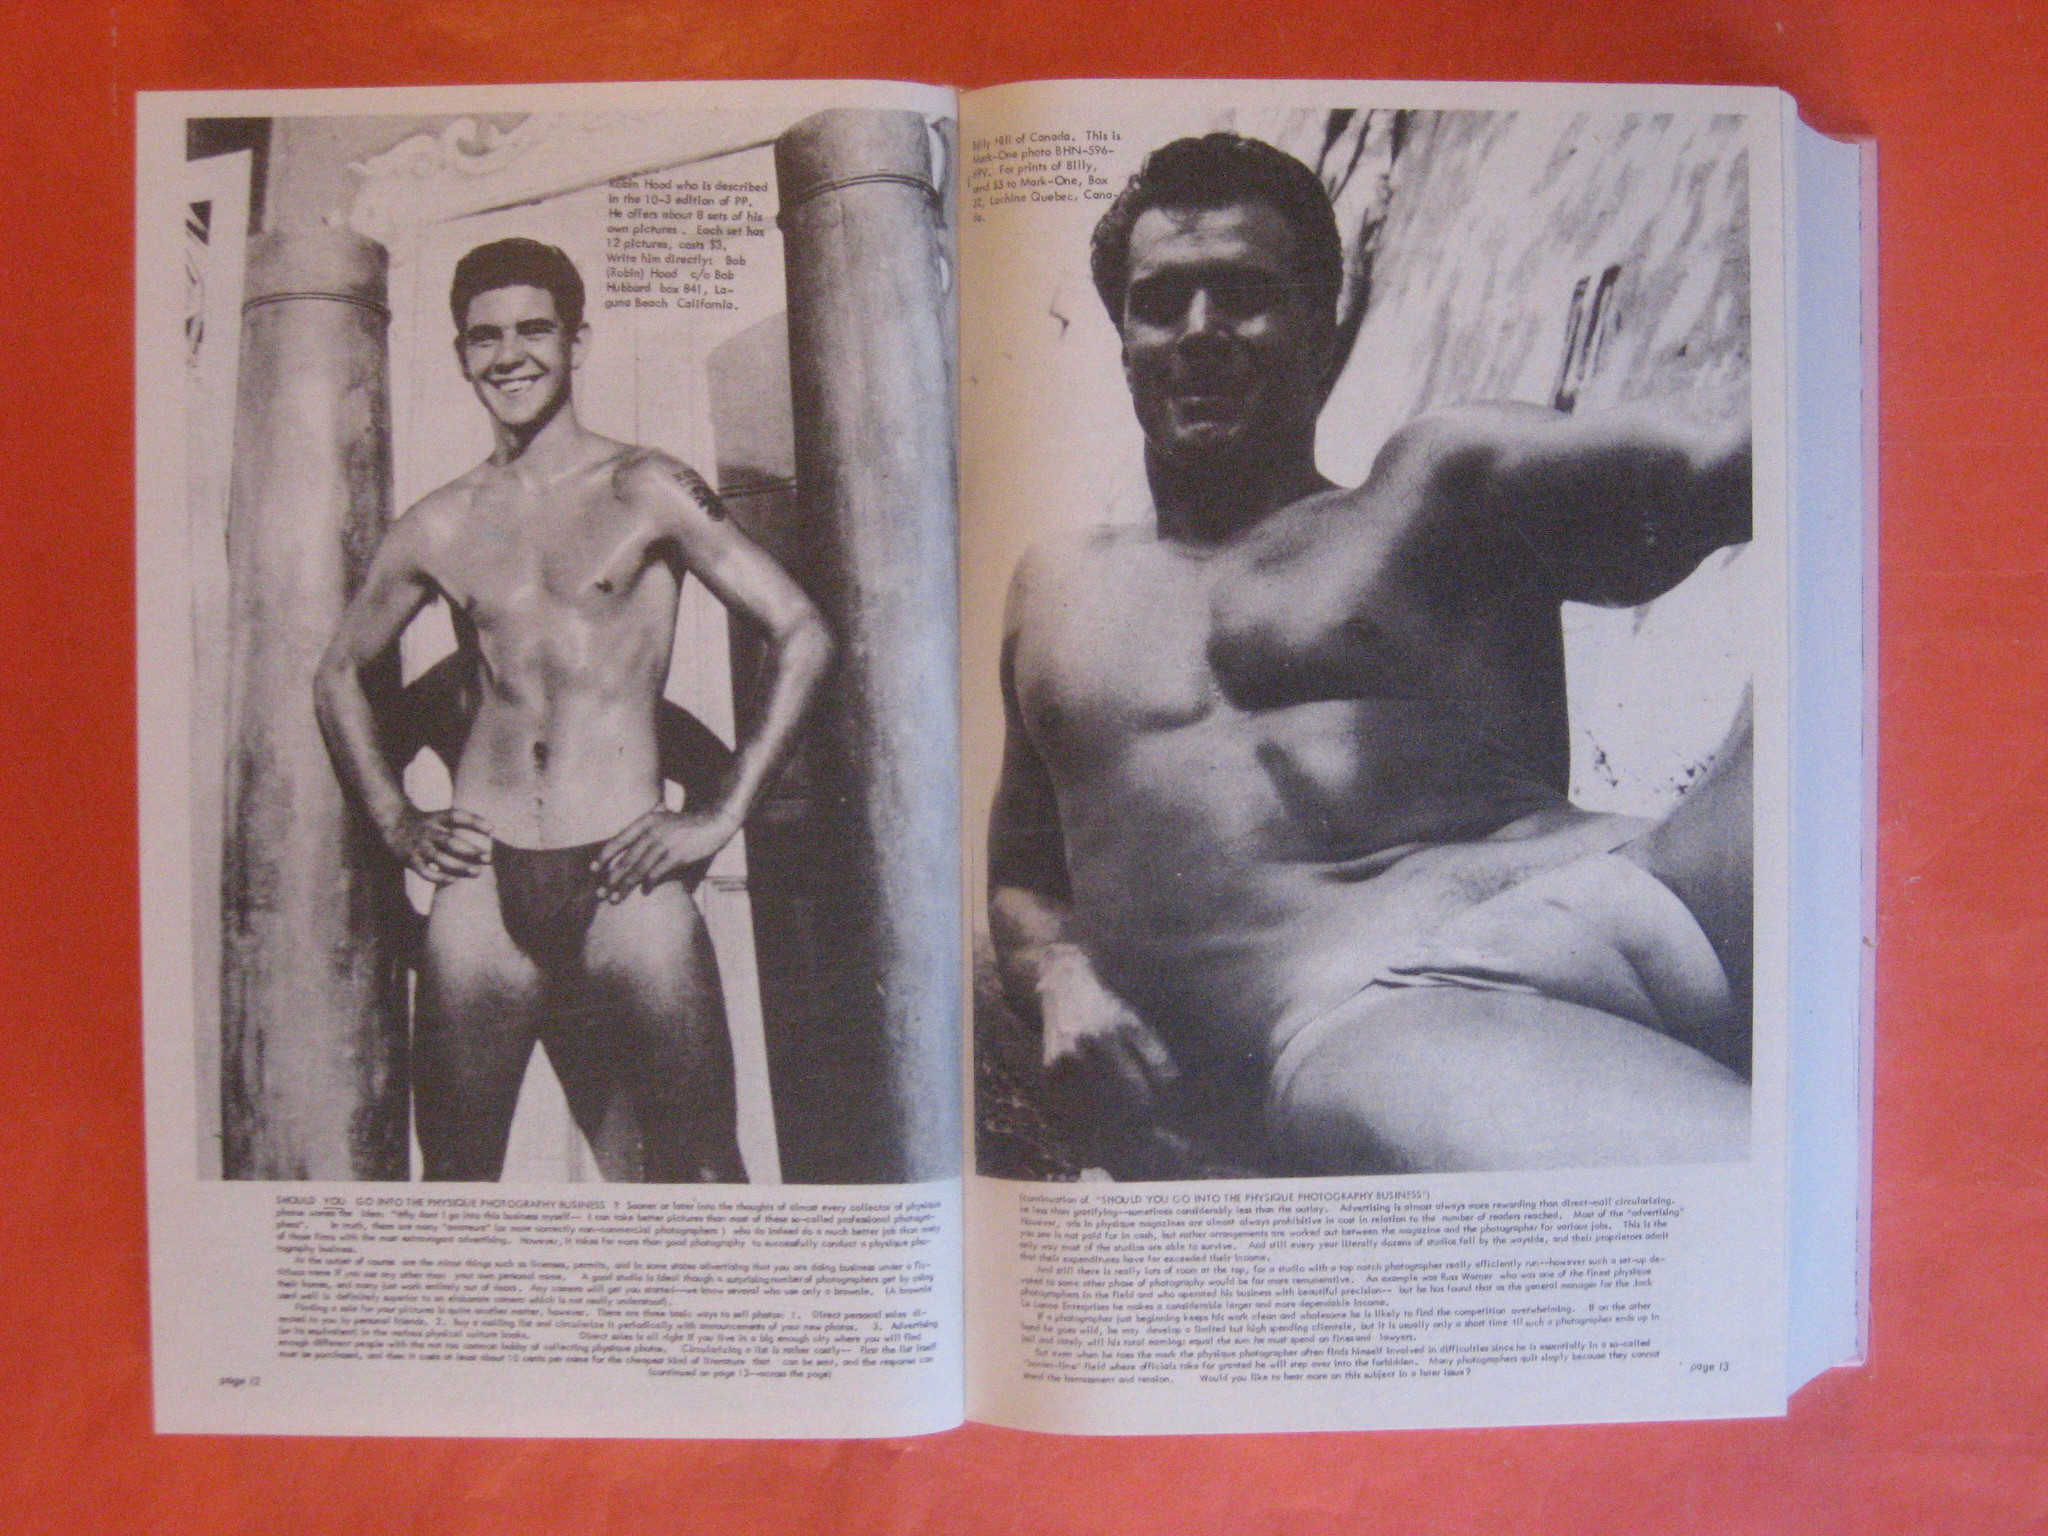 The Complete Reprint of Physique Pictorial 1960-1967 (Volume II), Mizer, Bob